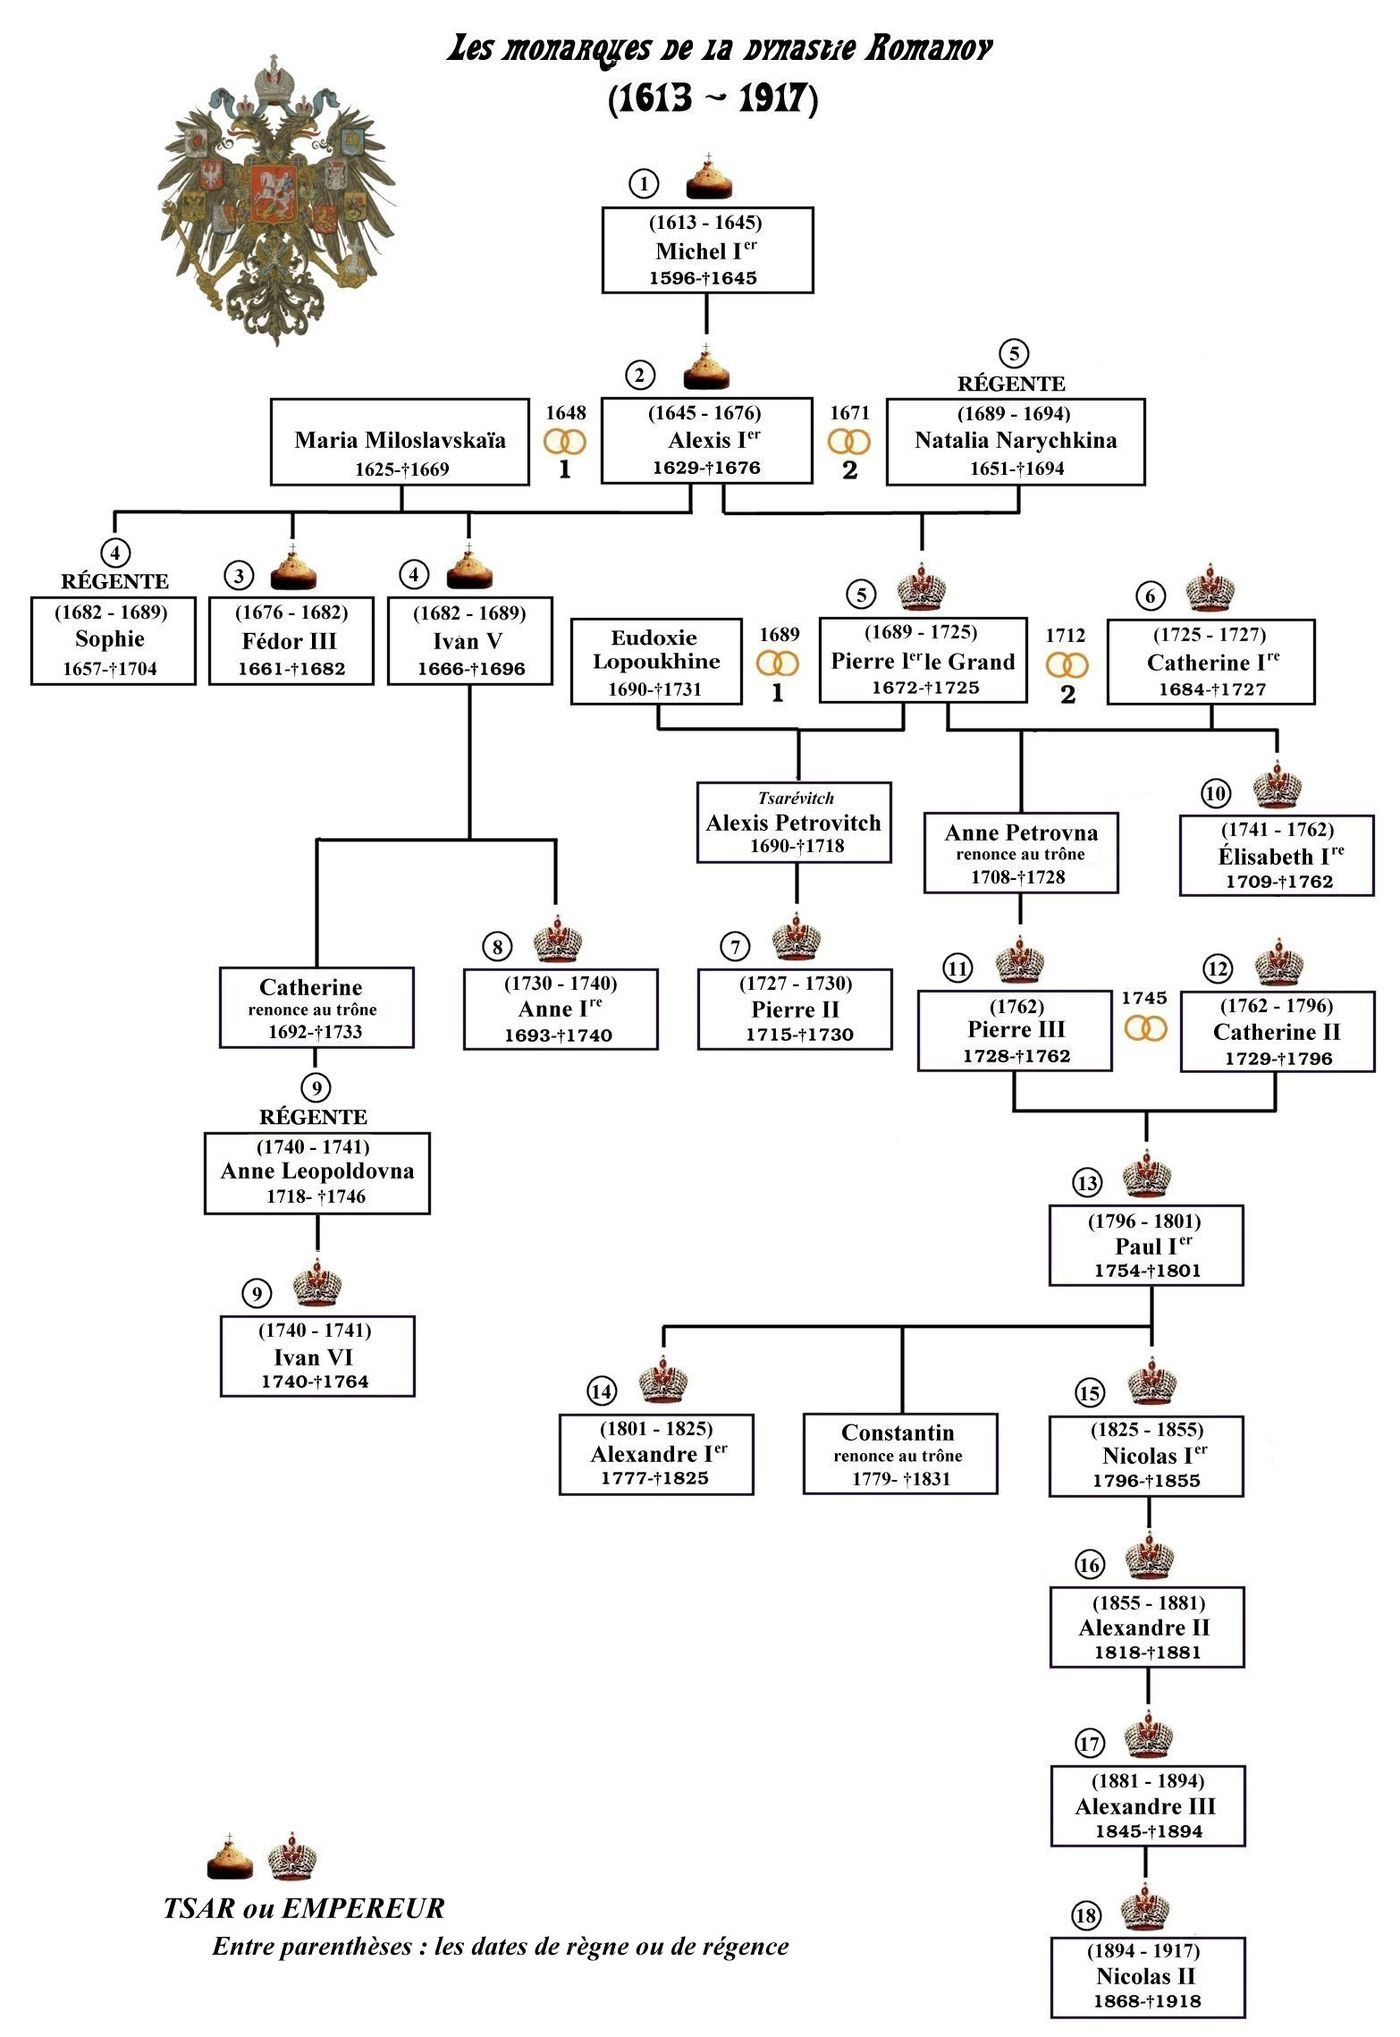 house of r ov a summary family tree the r ovs  house of r ov a summary family tree